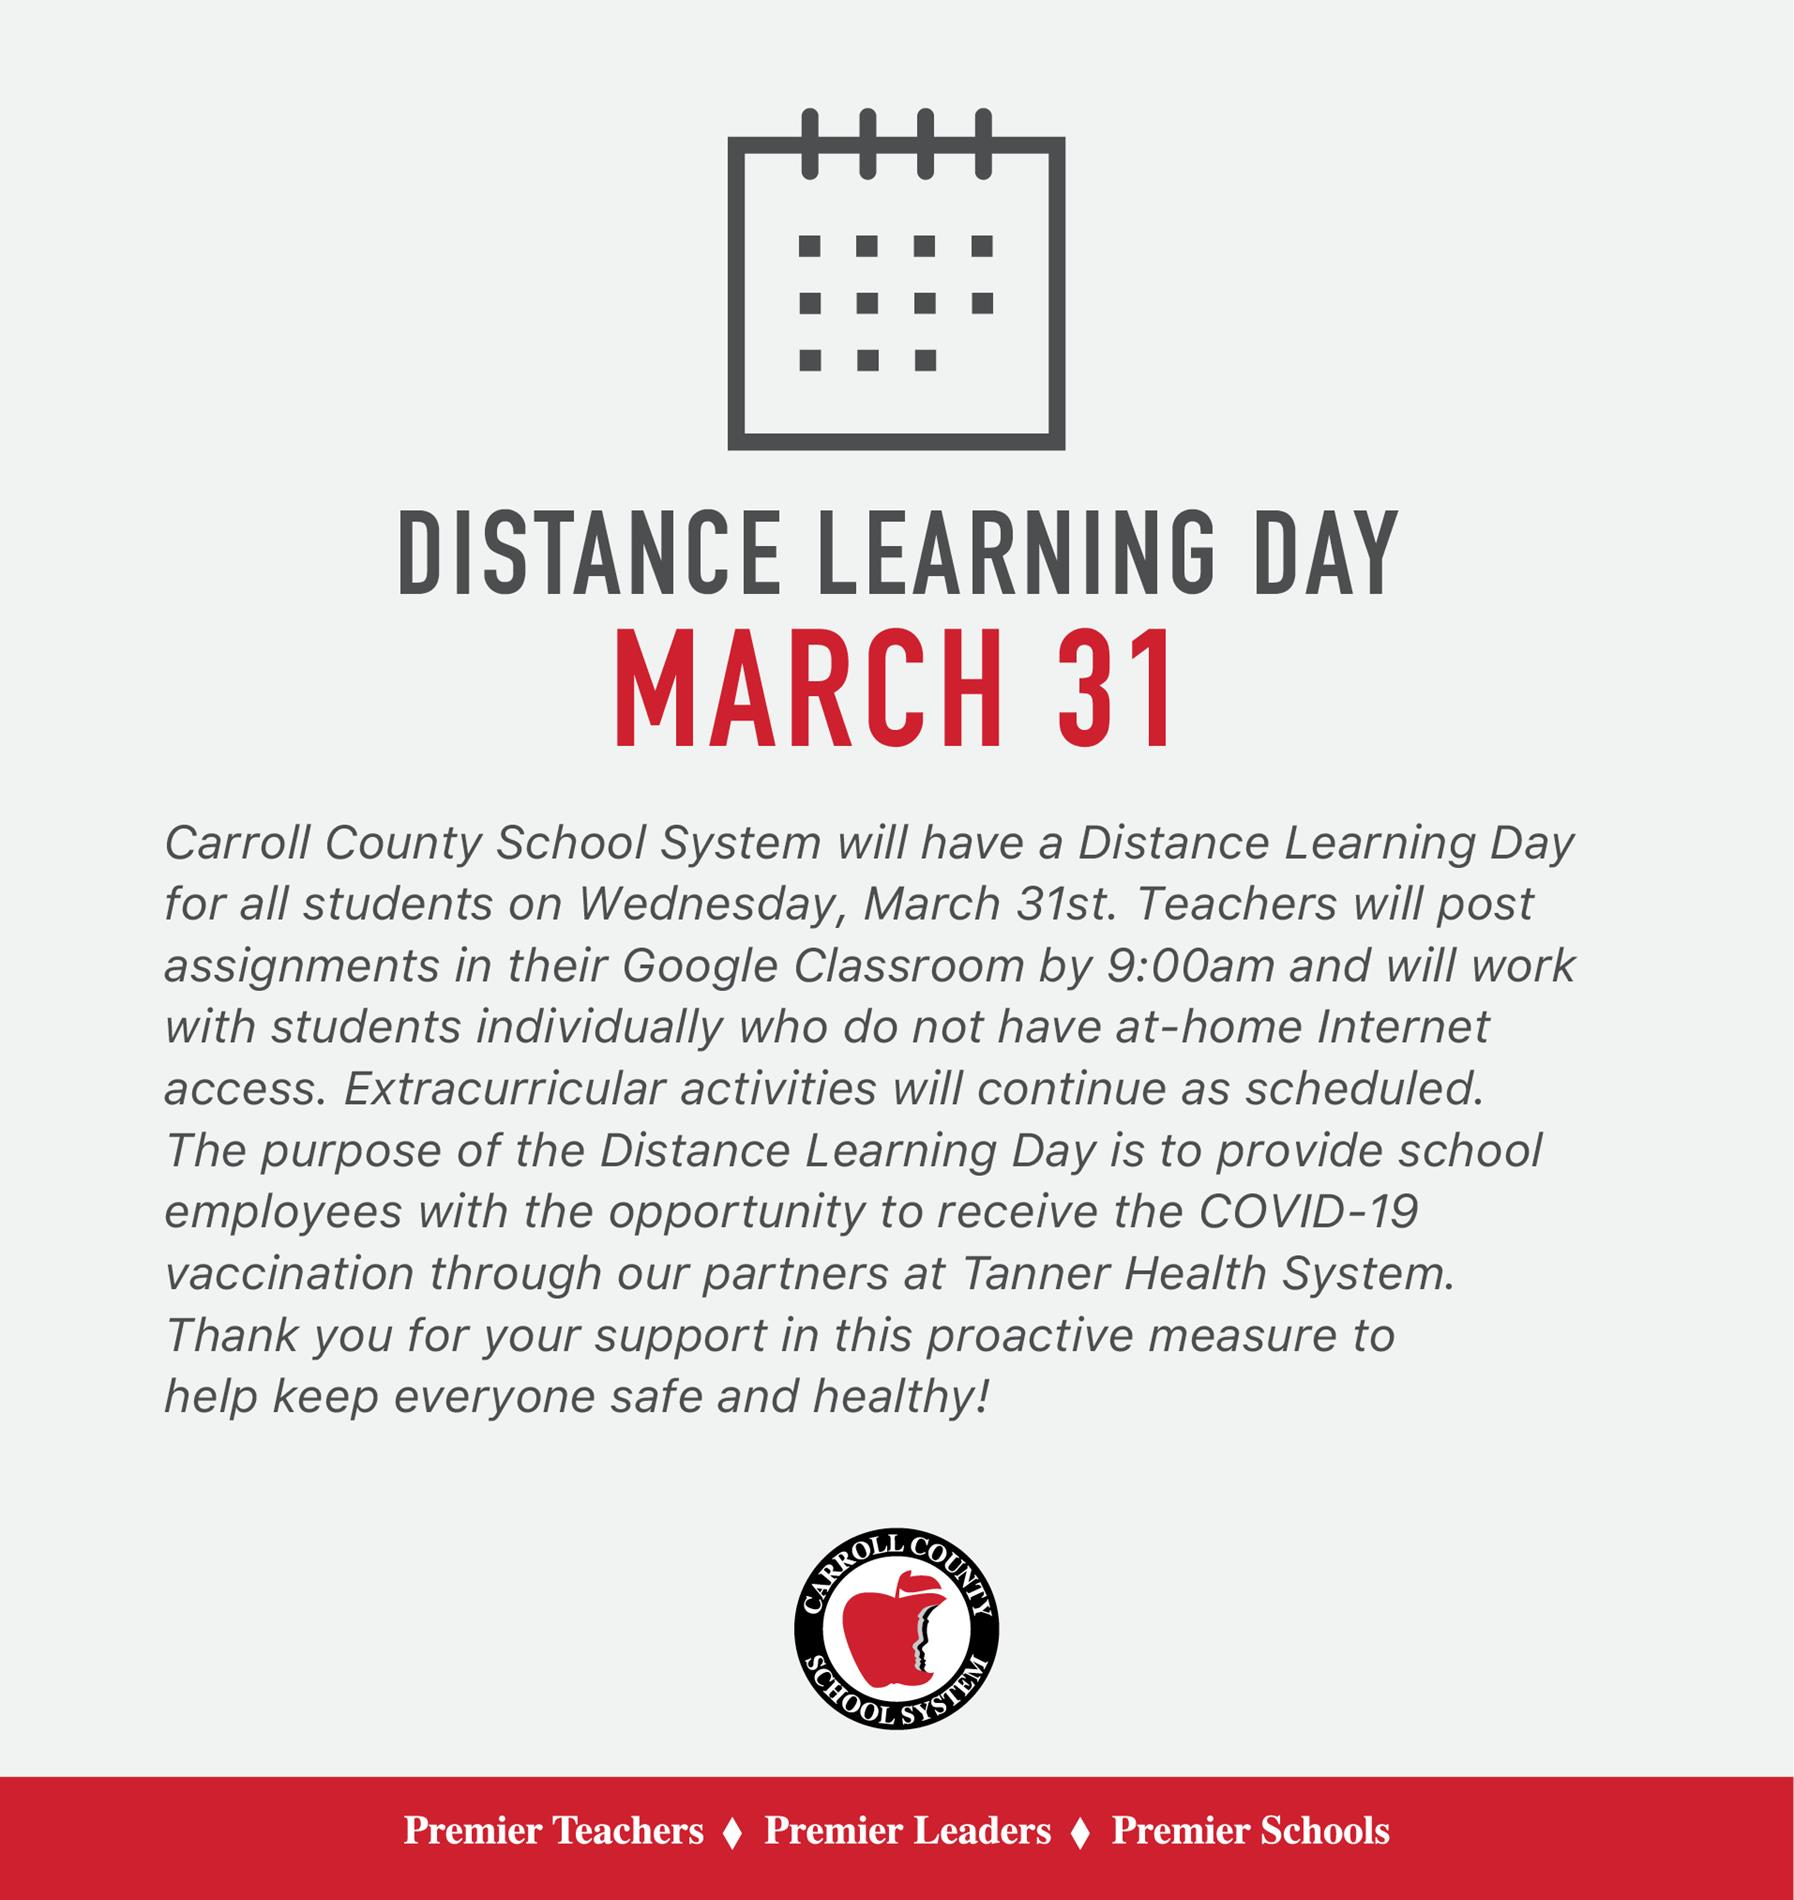 Distance Learning Day March 31